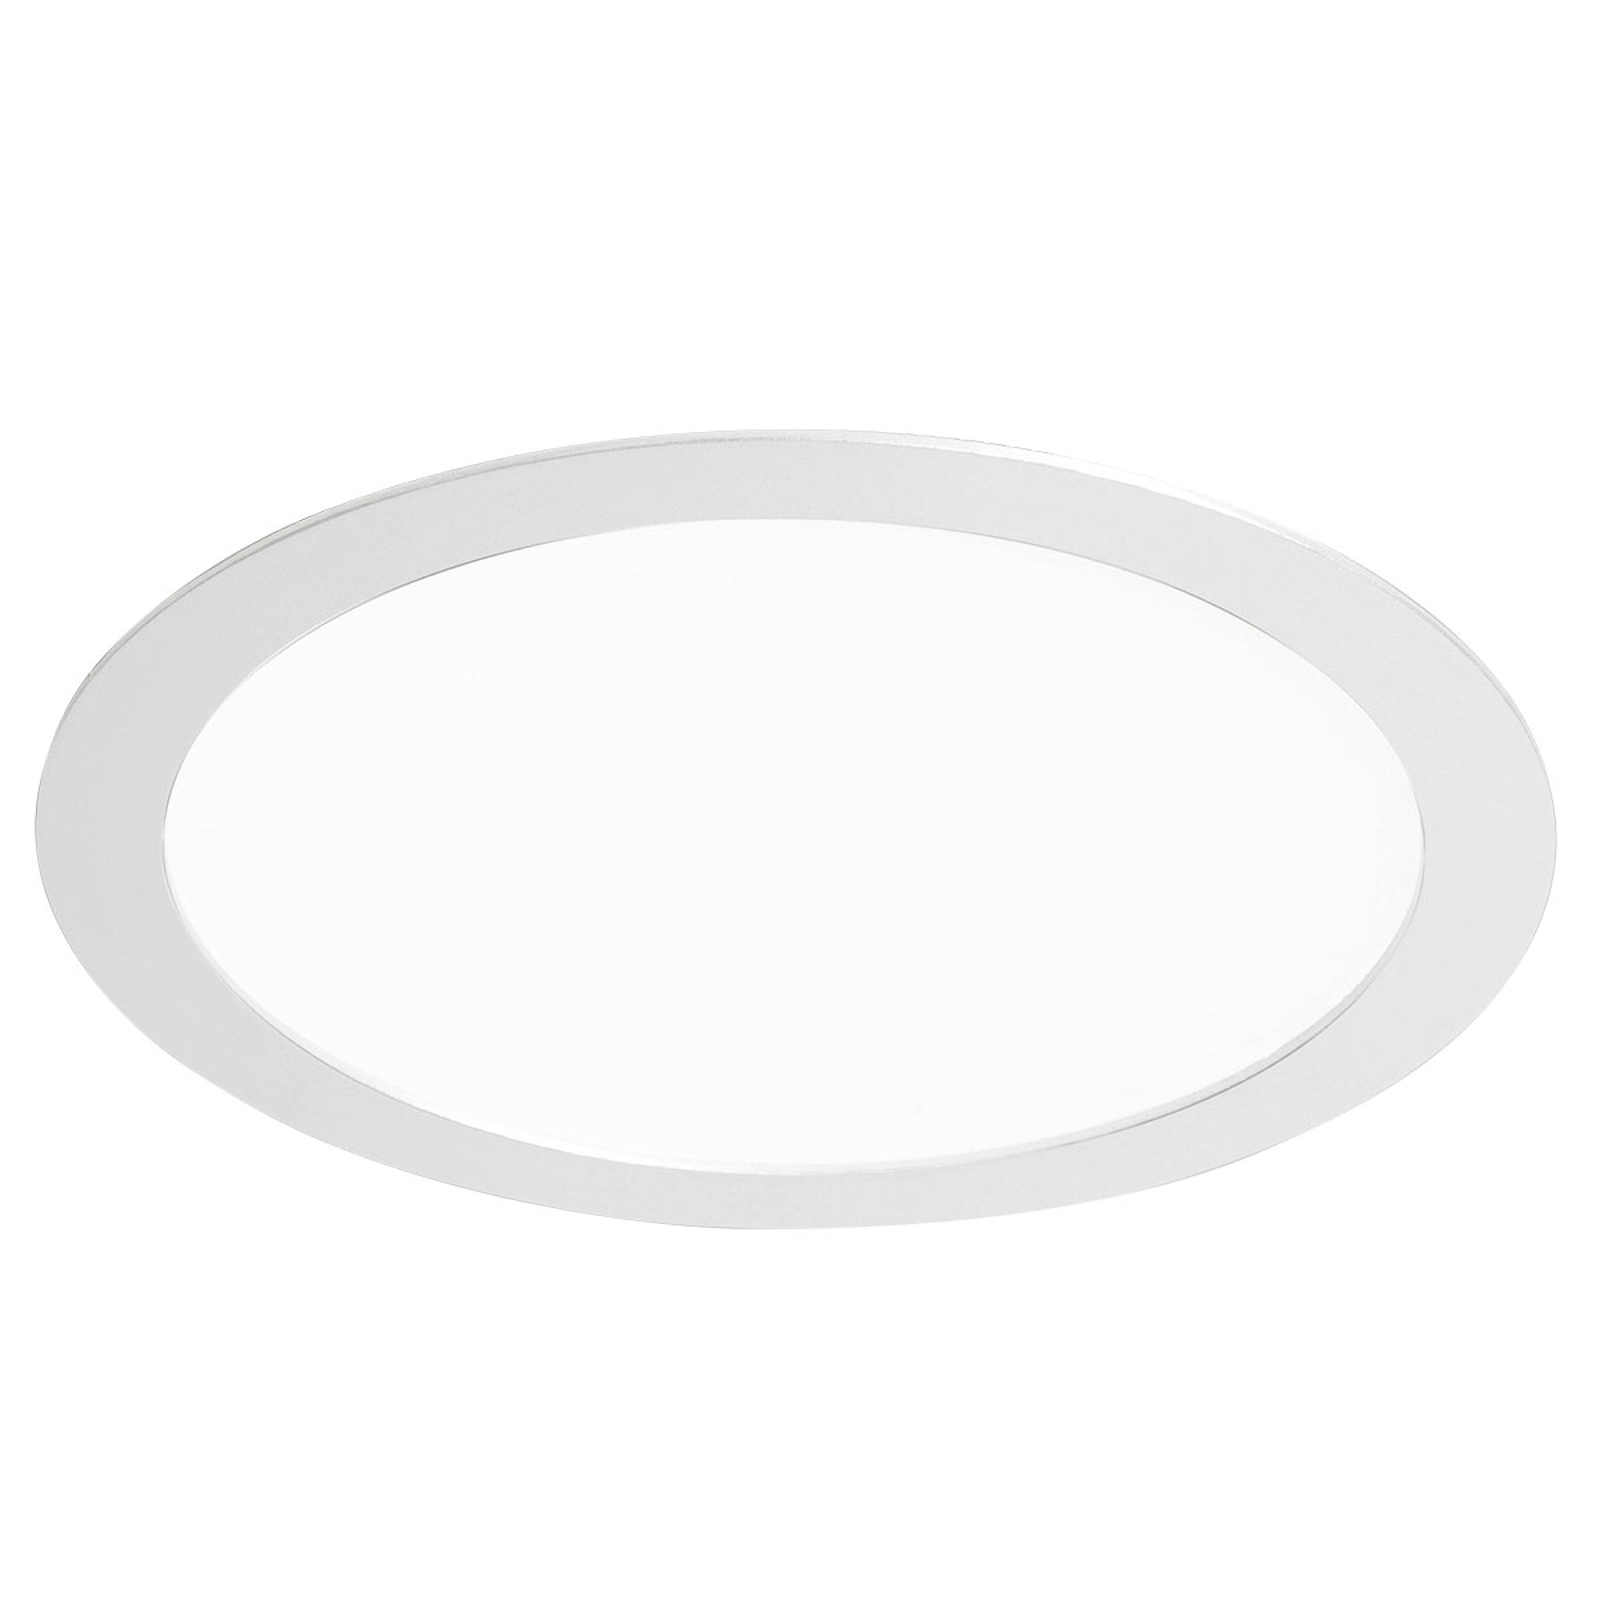 Moon Round LED-downlight 18W, 4 000 K